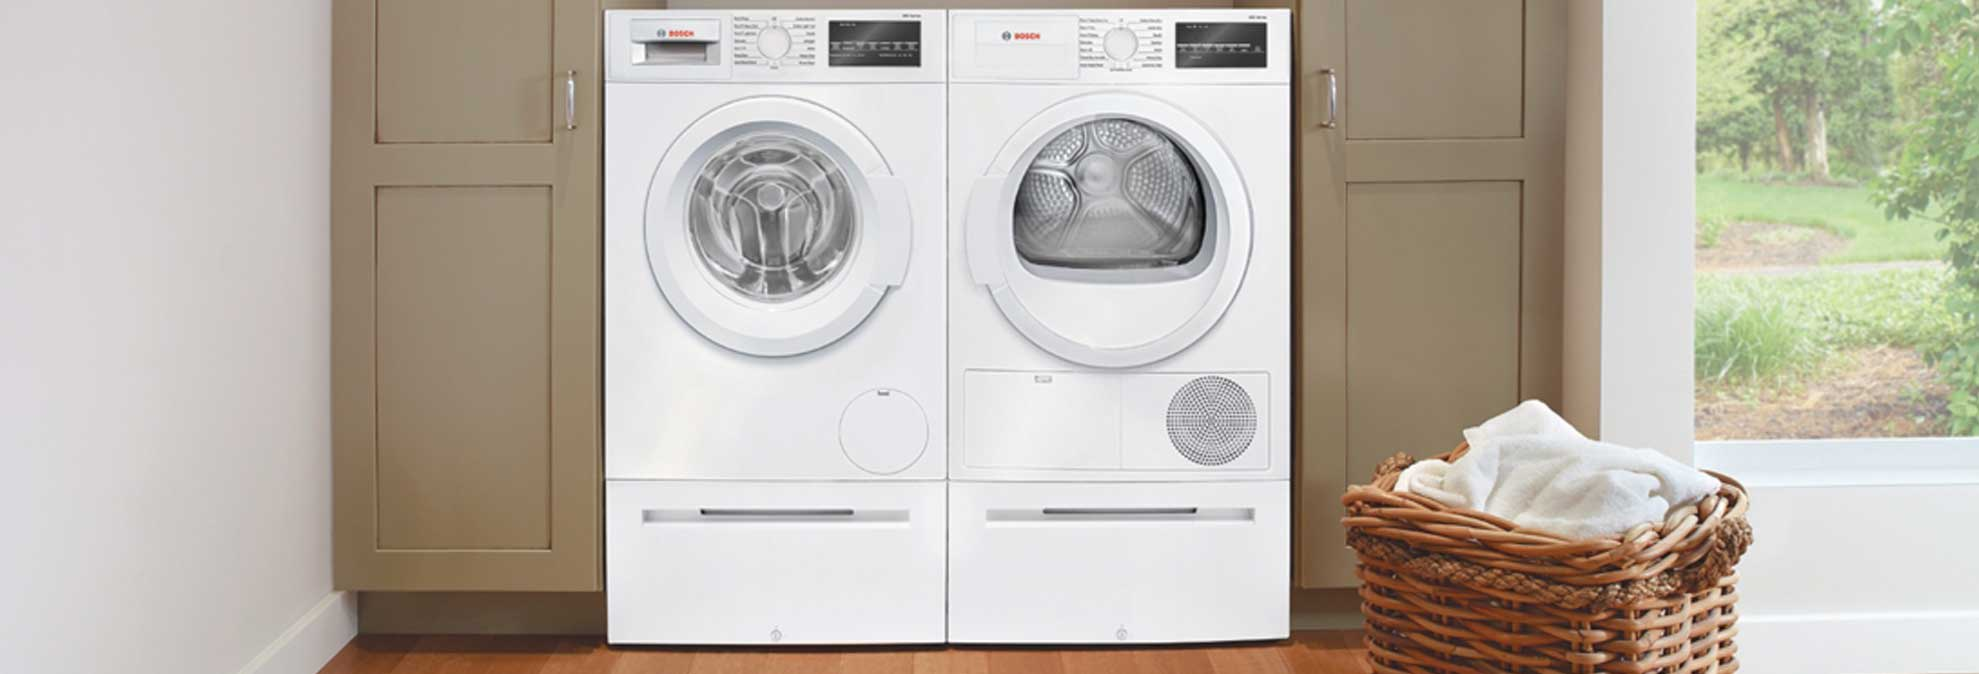 Samsung Compact Dryer Scores In